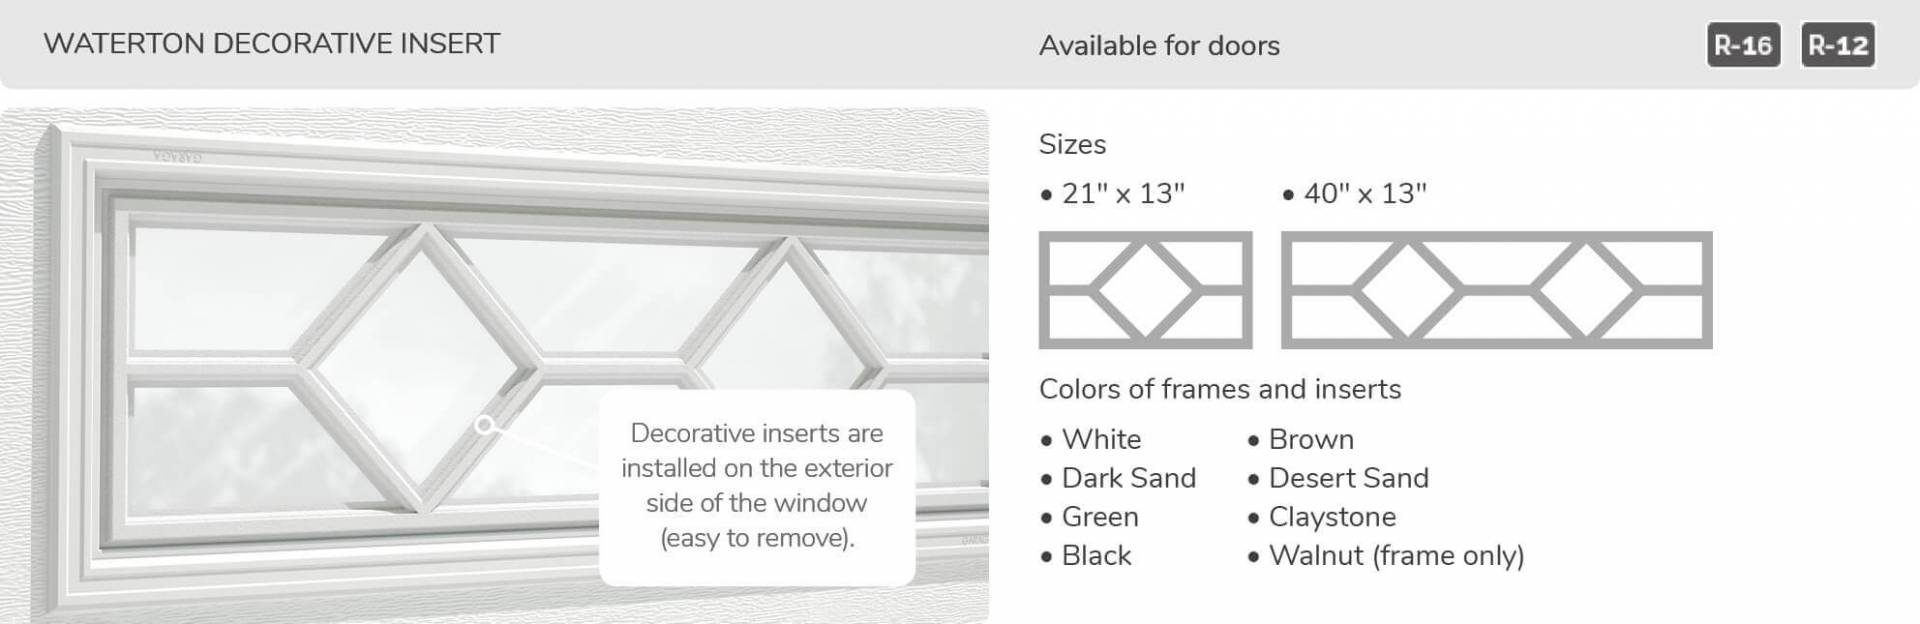 Waterton Decorative Insert, 21' x 13' and 40' x 13', available for doors R-16 and R-12